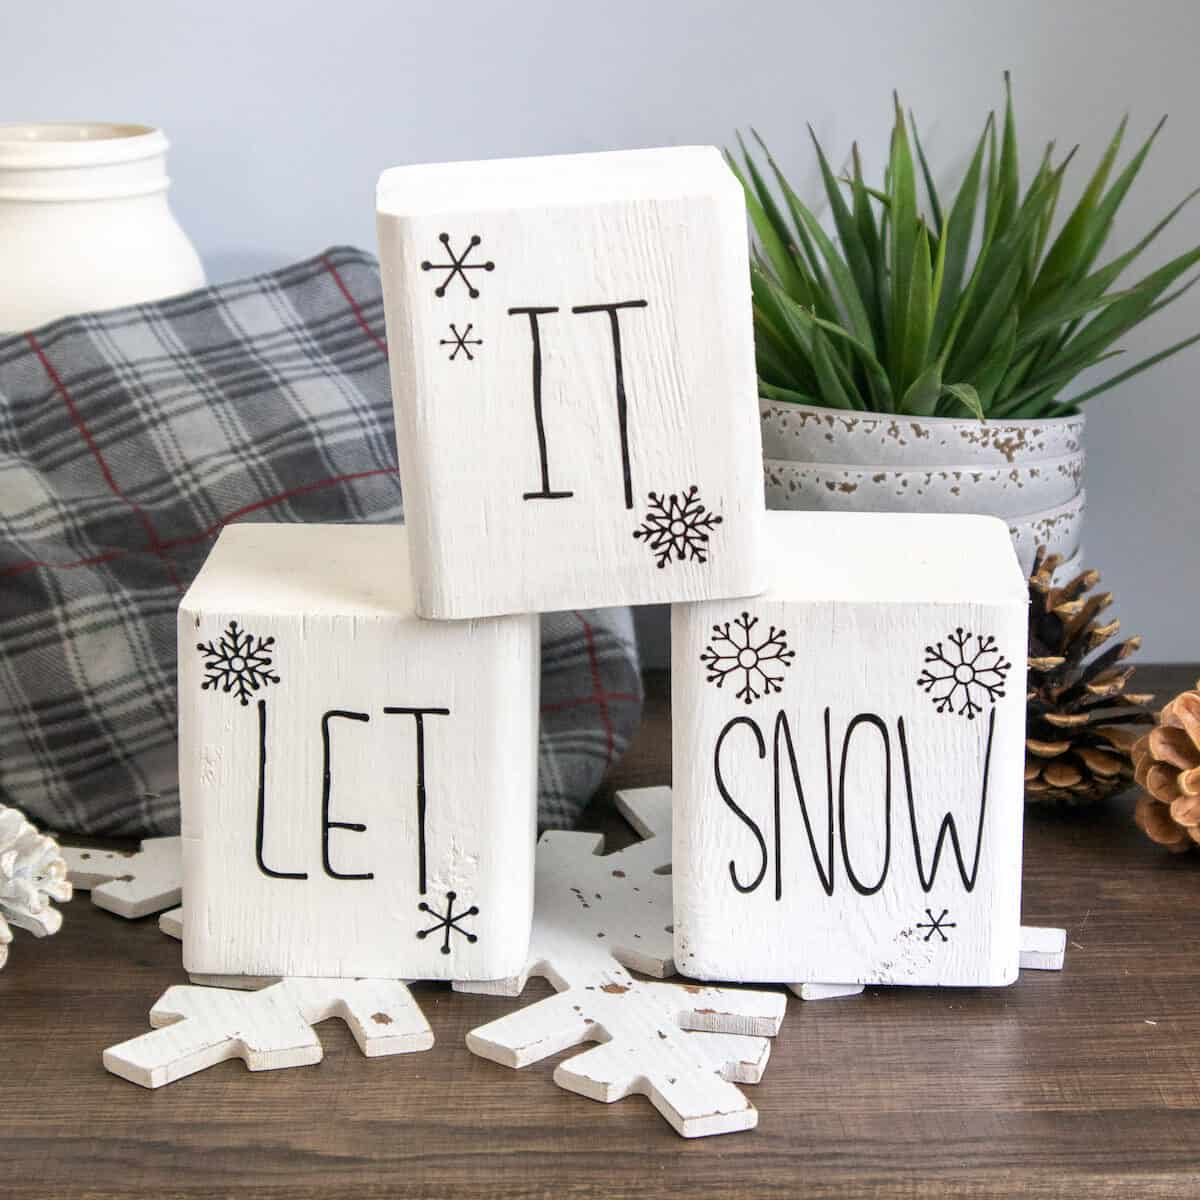 painted wood block Snowman word stencils on table